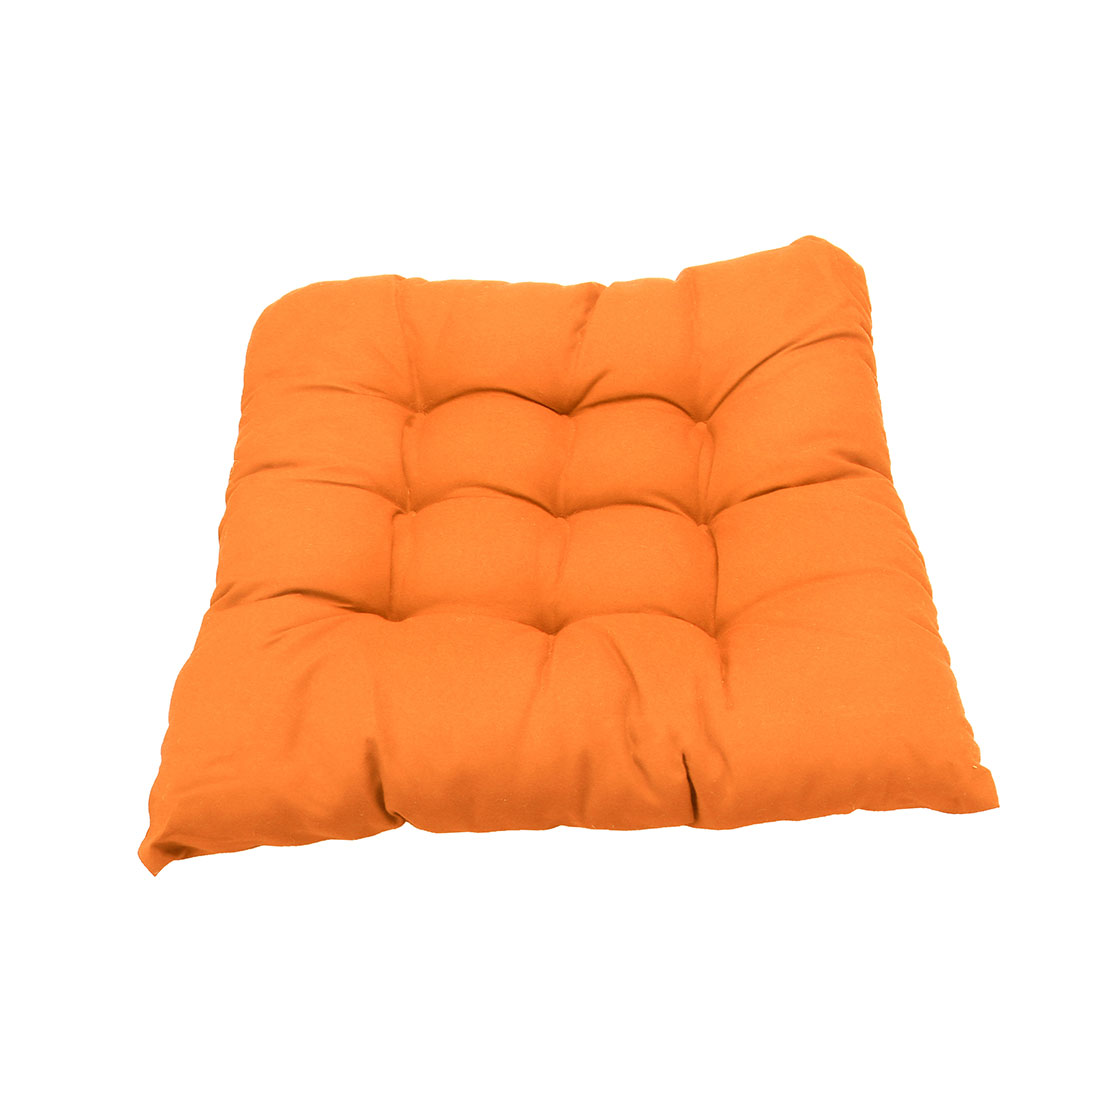 Living Room Decor Cotton Blends Strap Design Cushion Chair Buttocks Pad Orangered